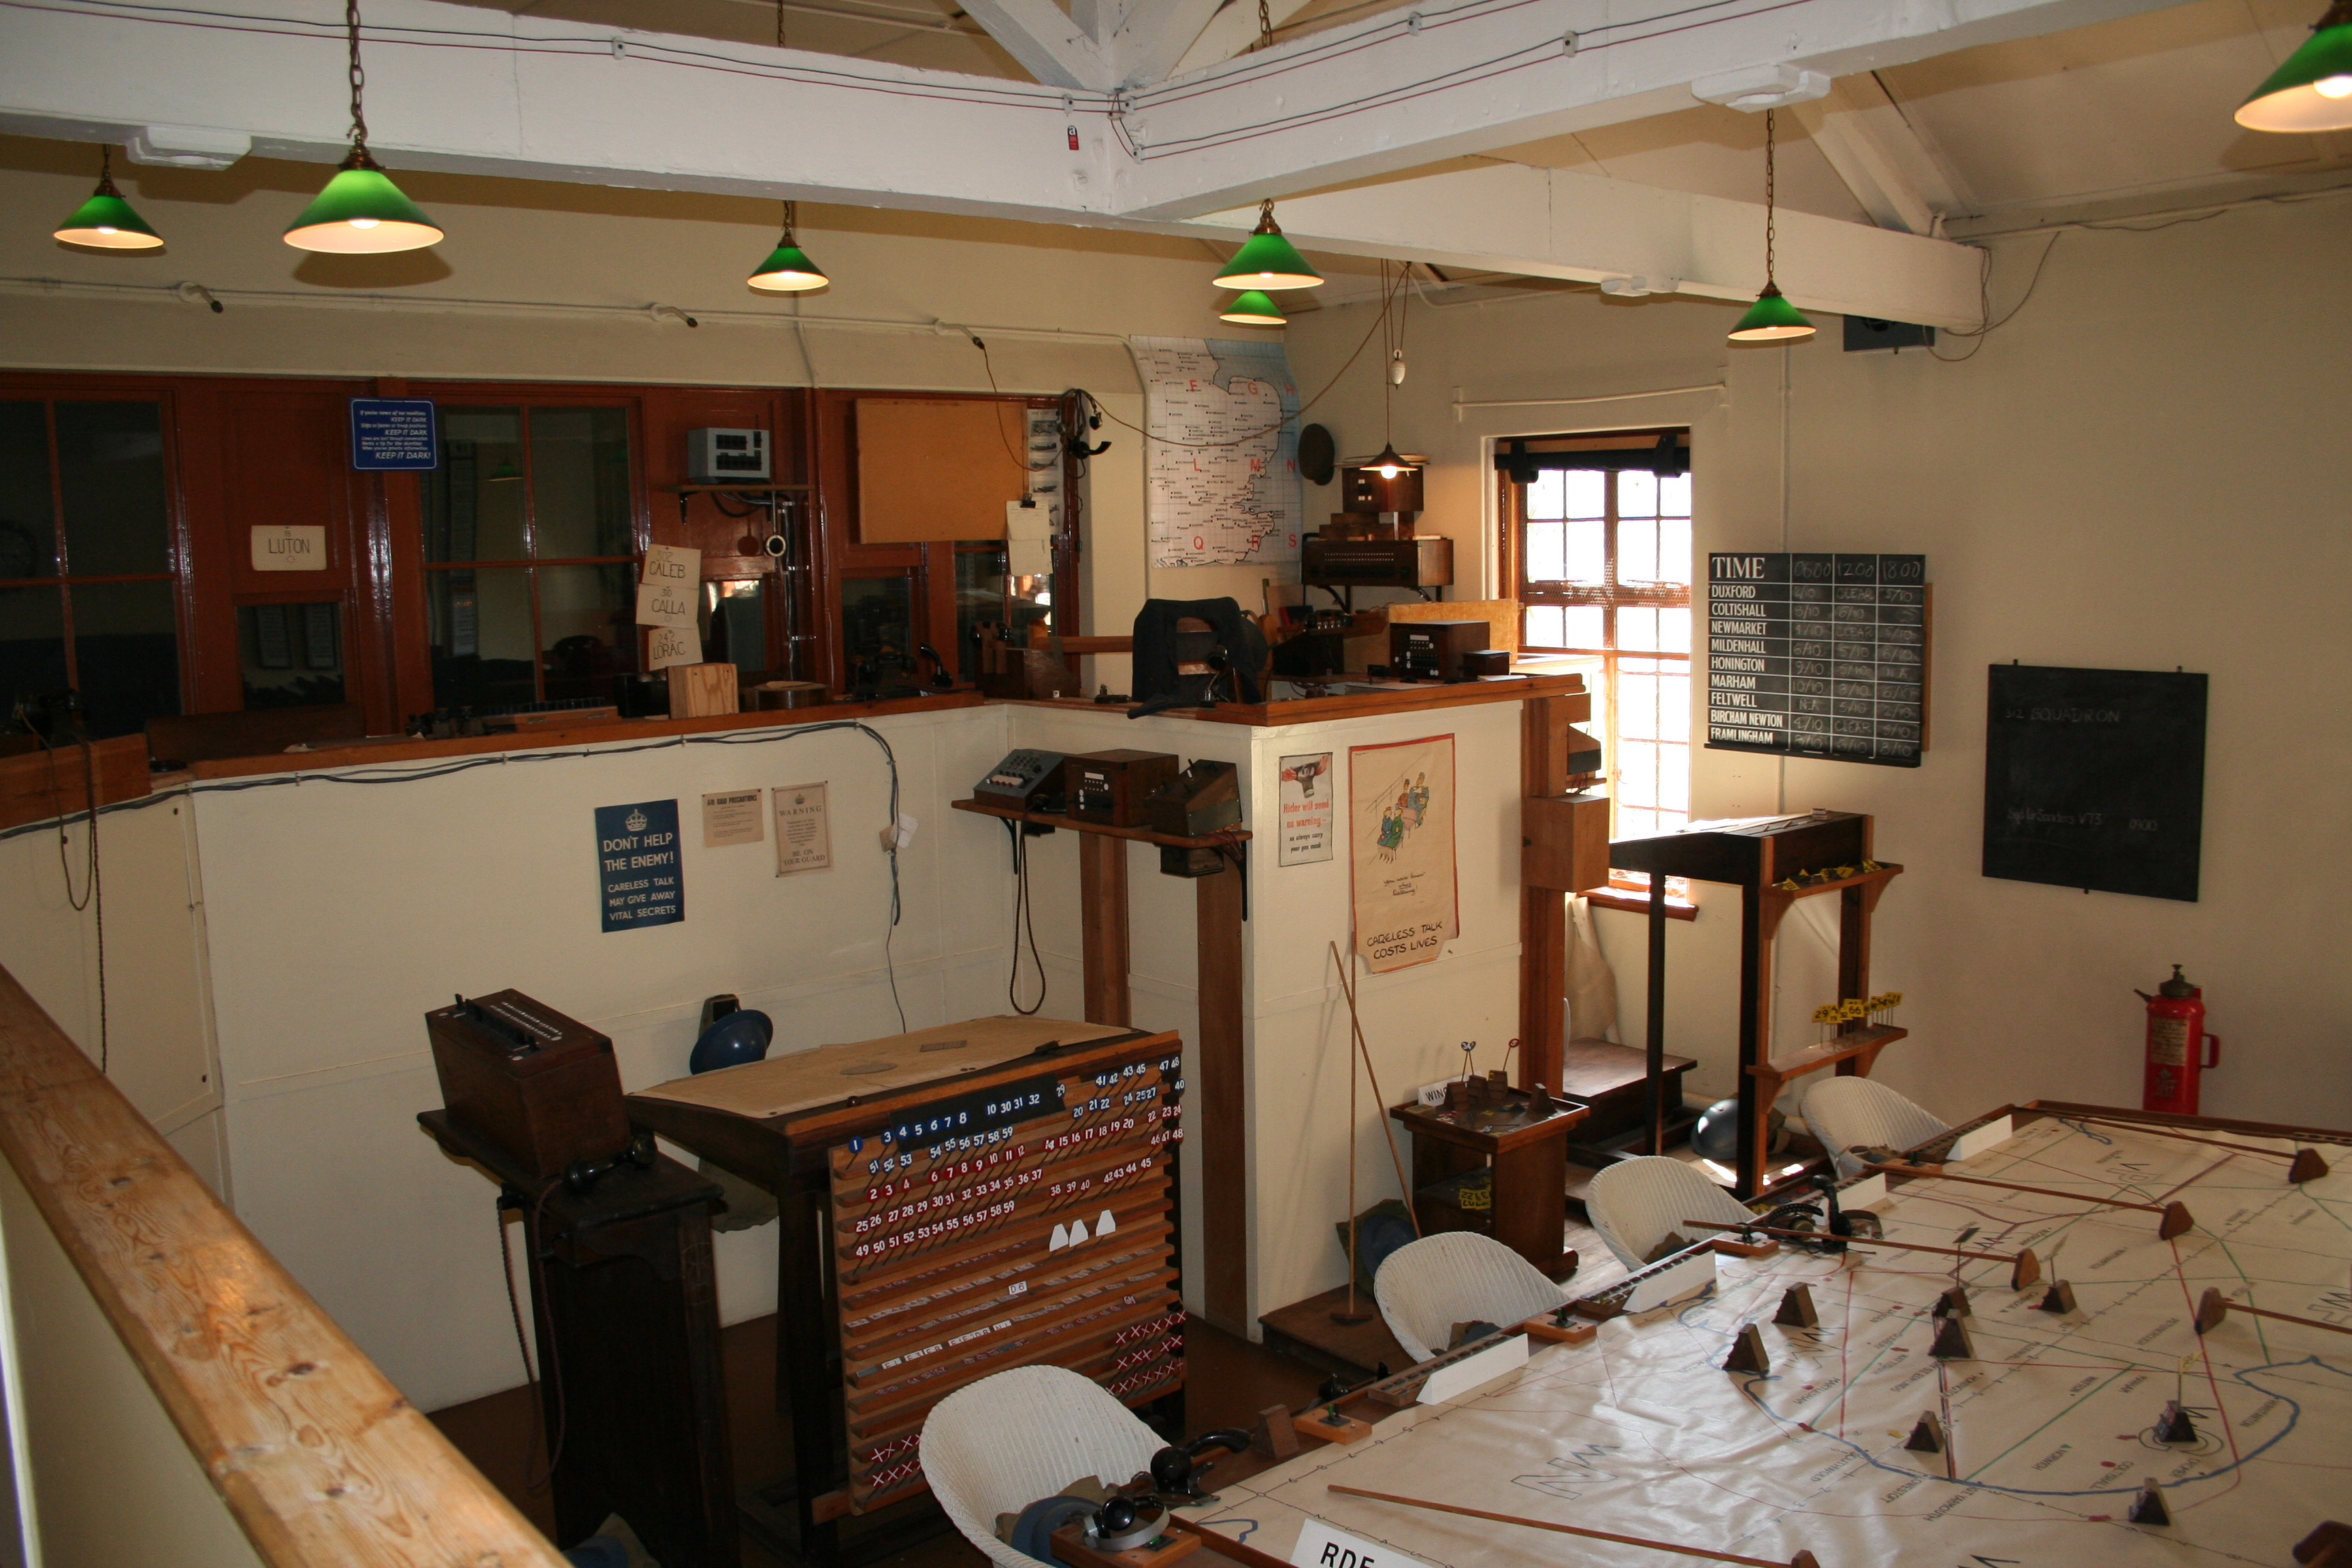 File Battle Of Britain Operations Room Raf Duxford Jpg